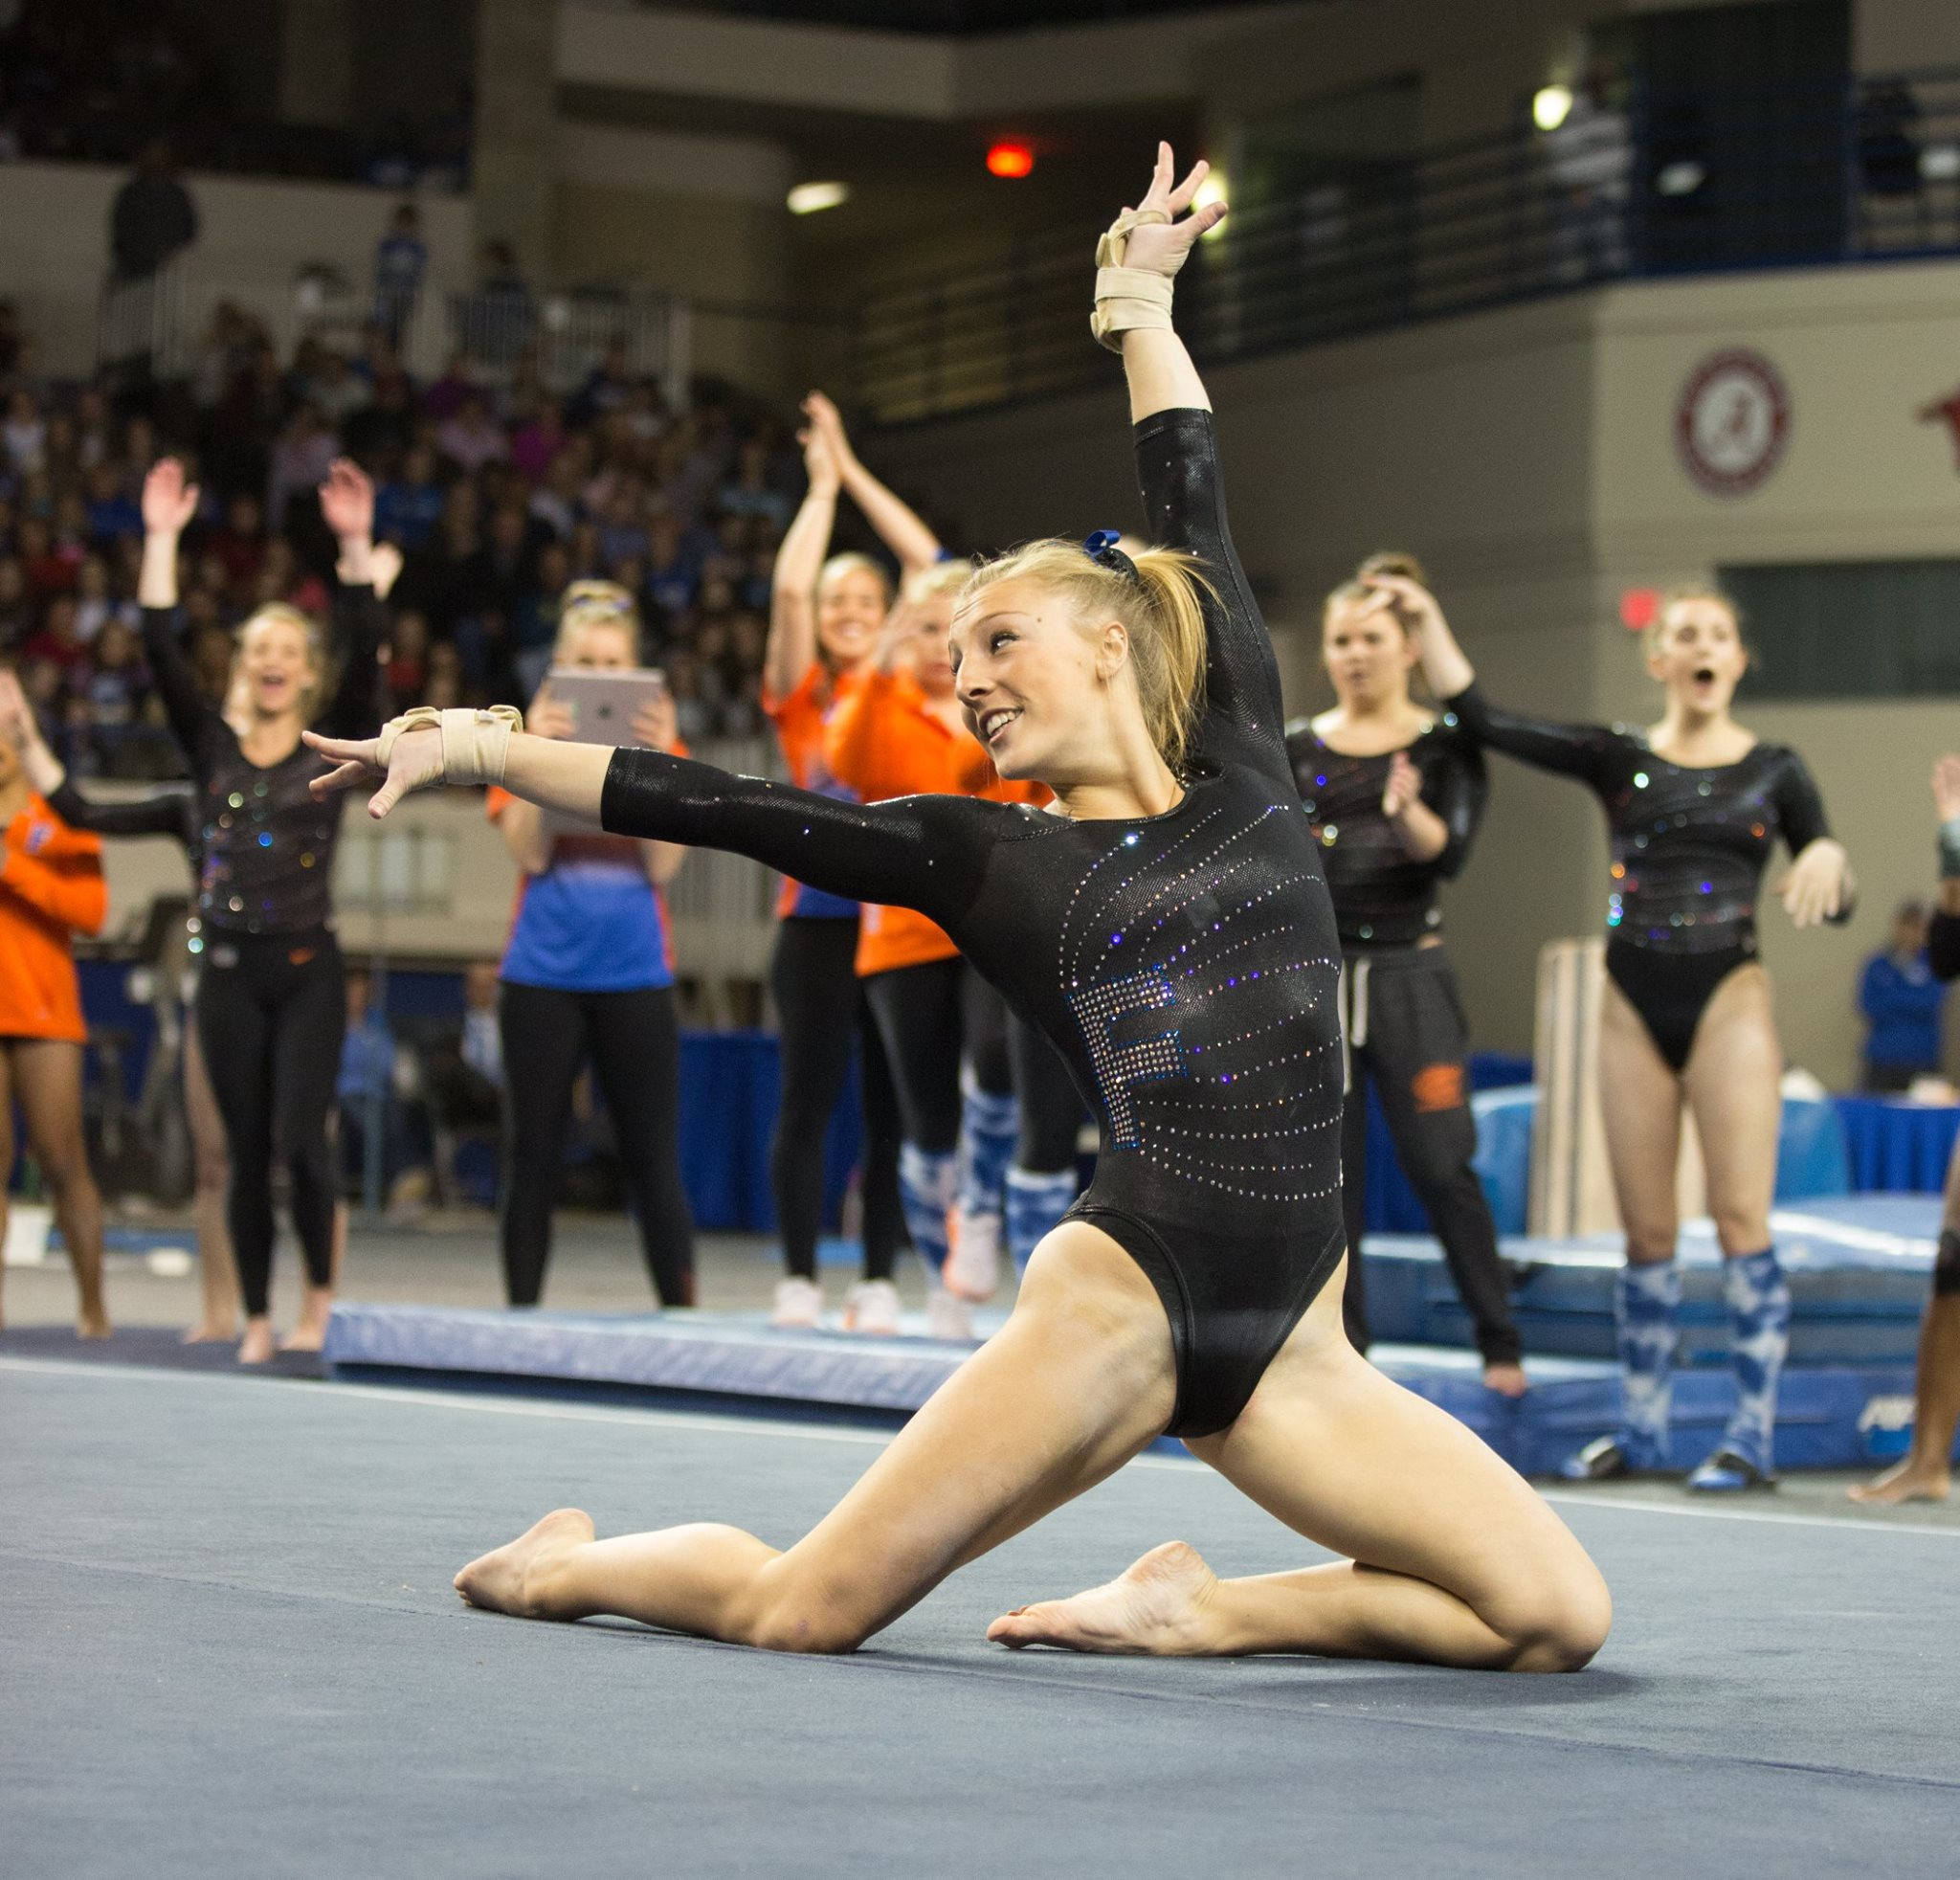 Alex mcmurtry academic all america punch front for Floor gymnastics